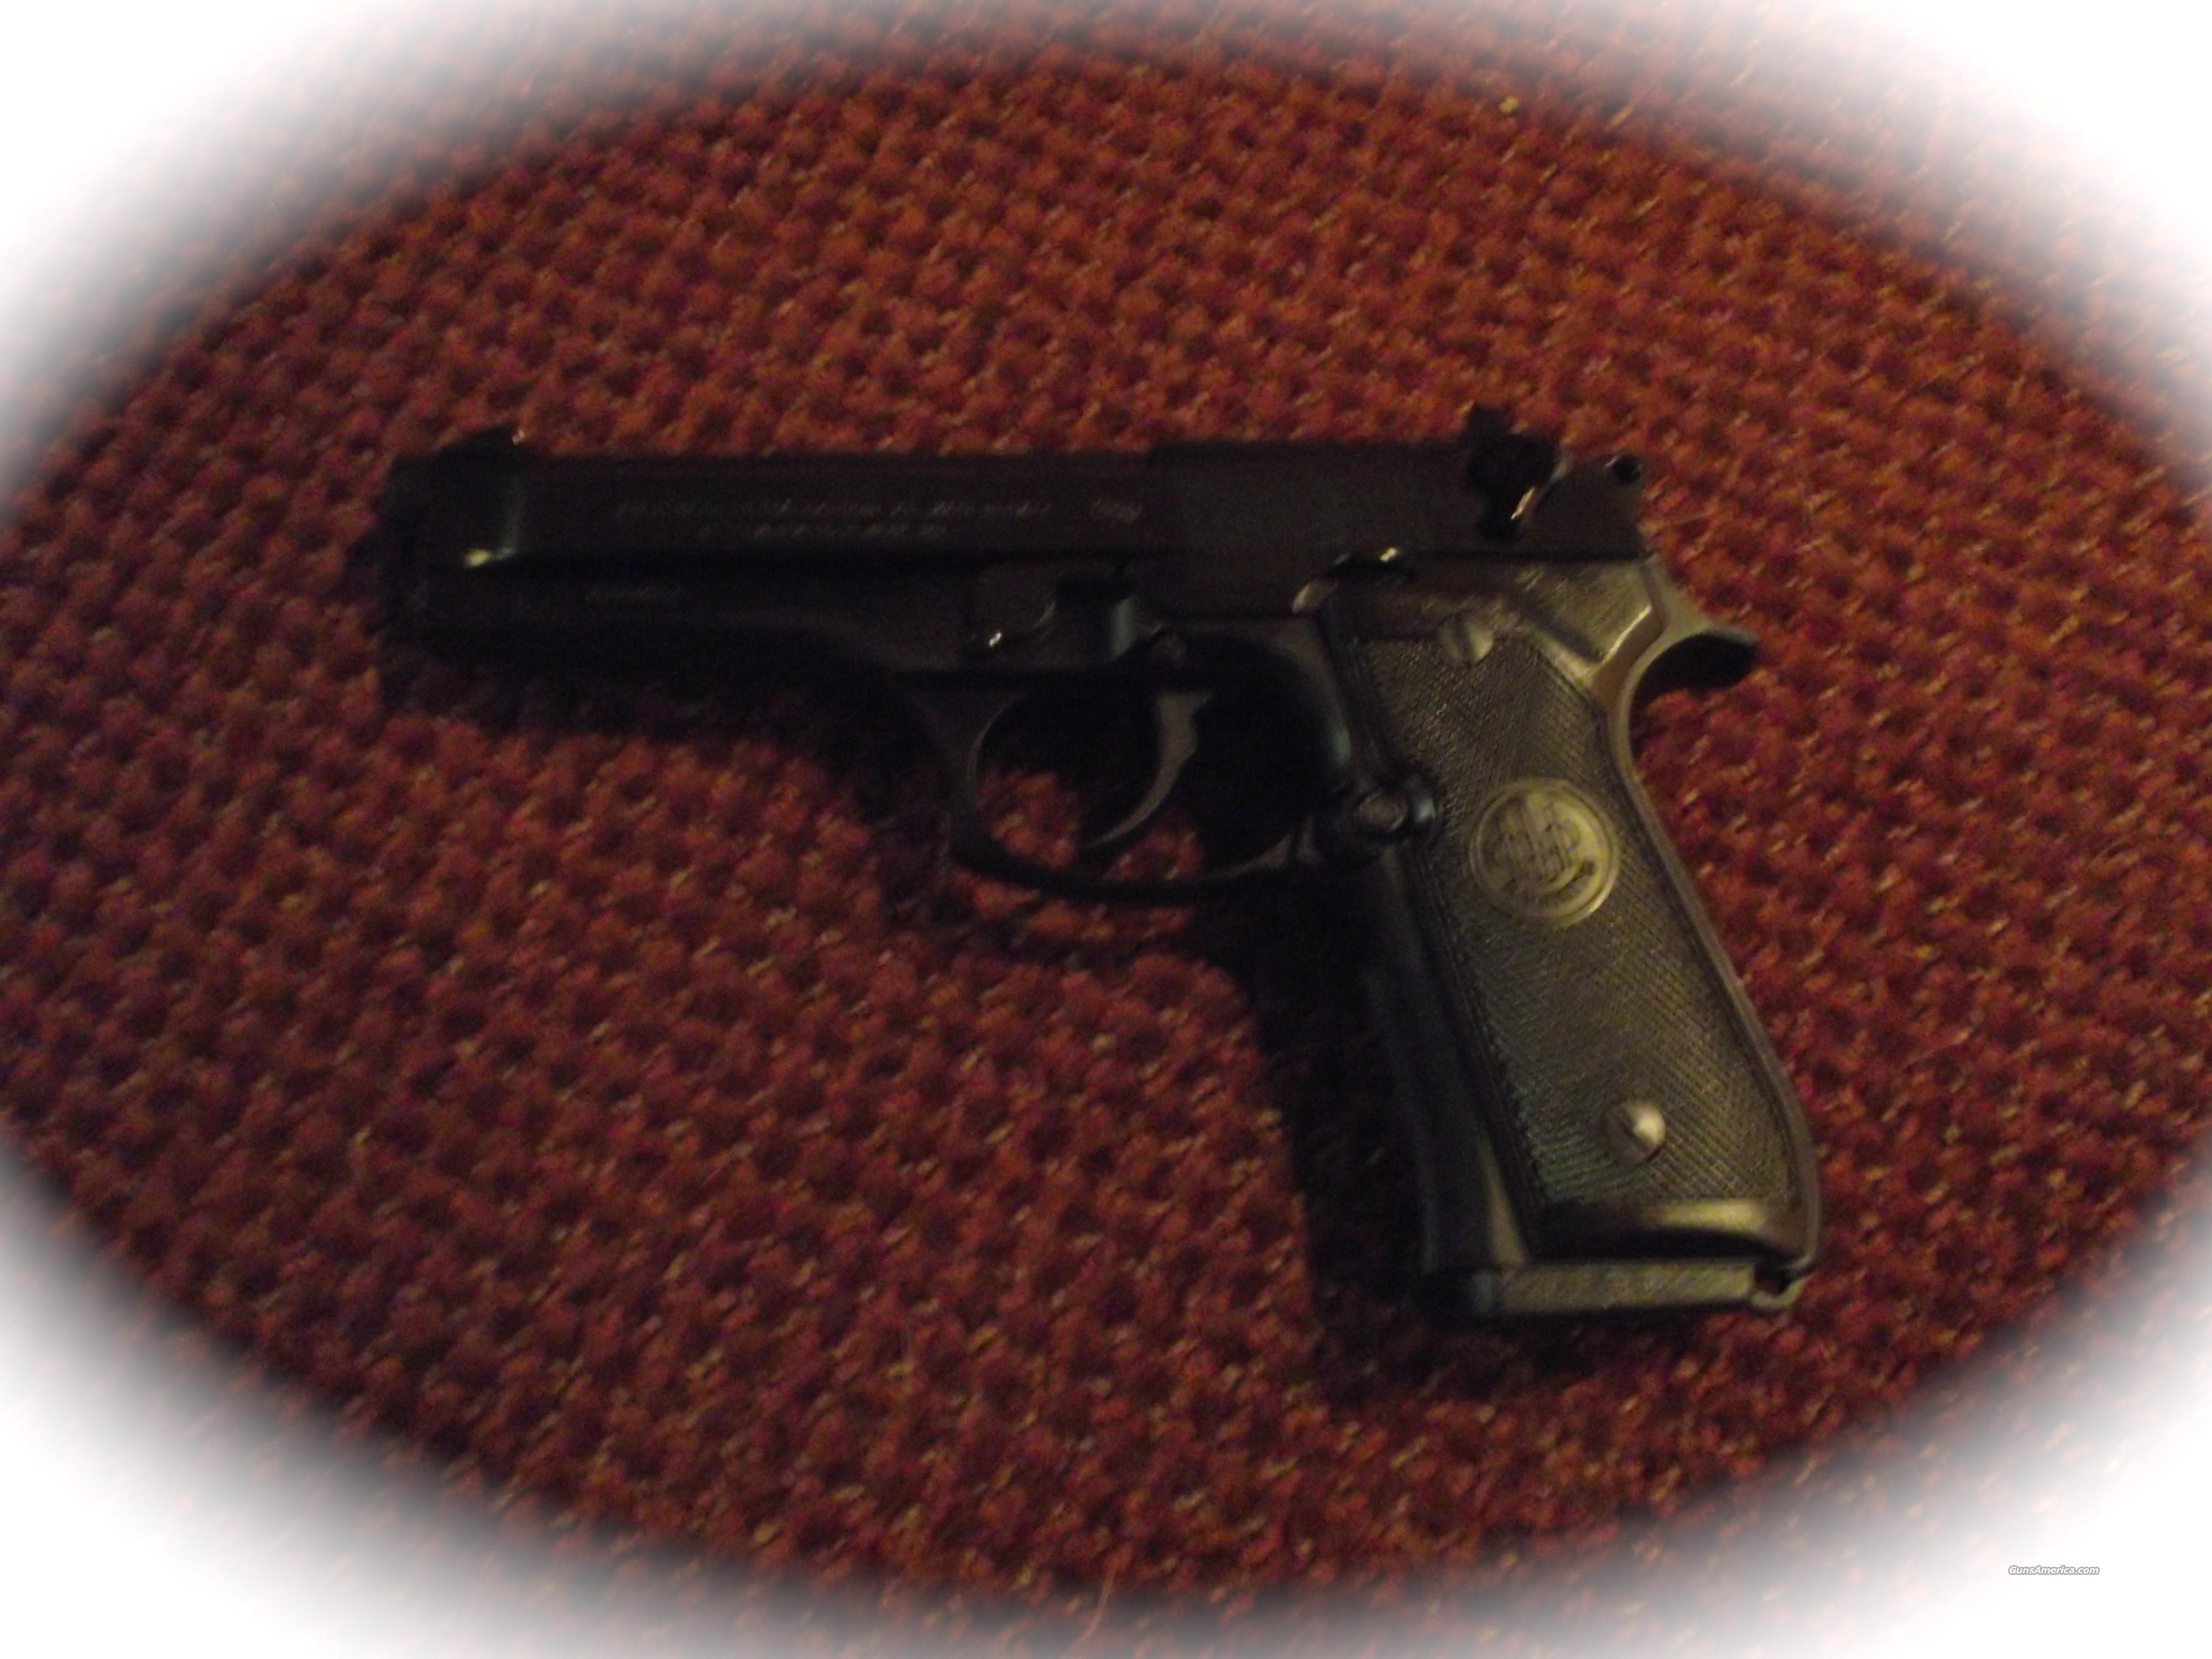 NIB Beretta 92FS 9MM  Guns > Pistols > Beretta Pistols > Model 92 Series